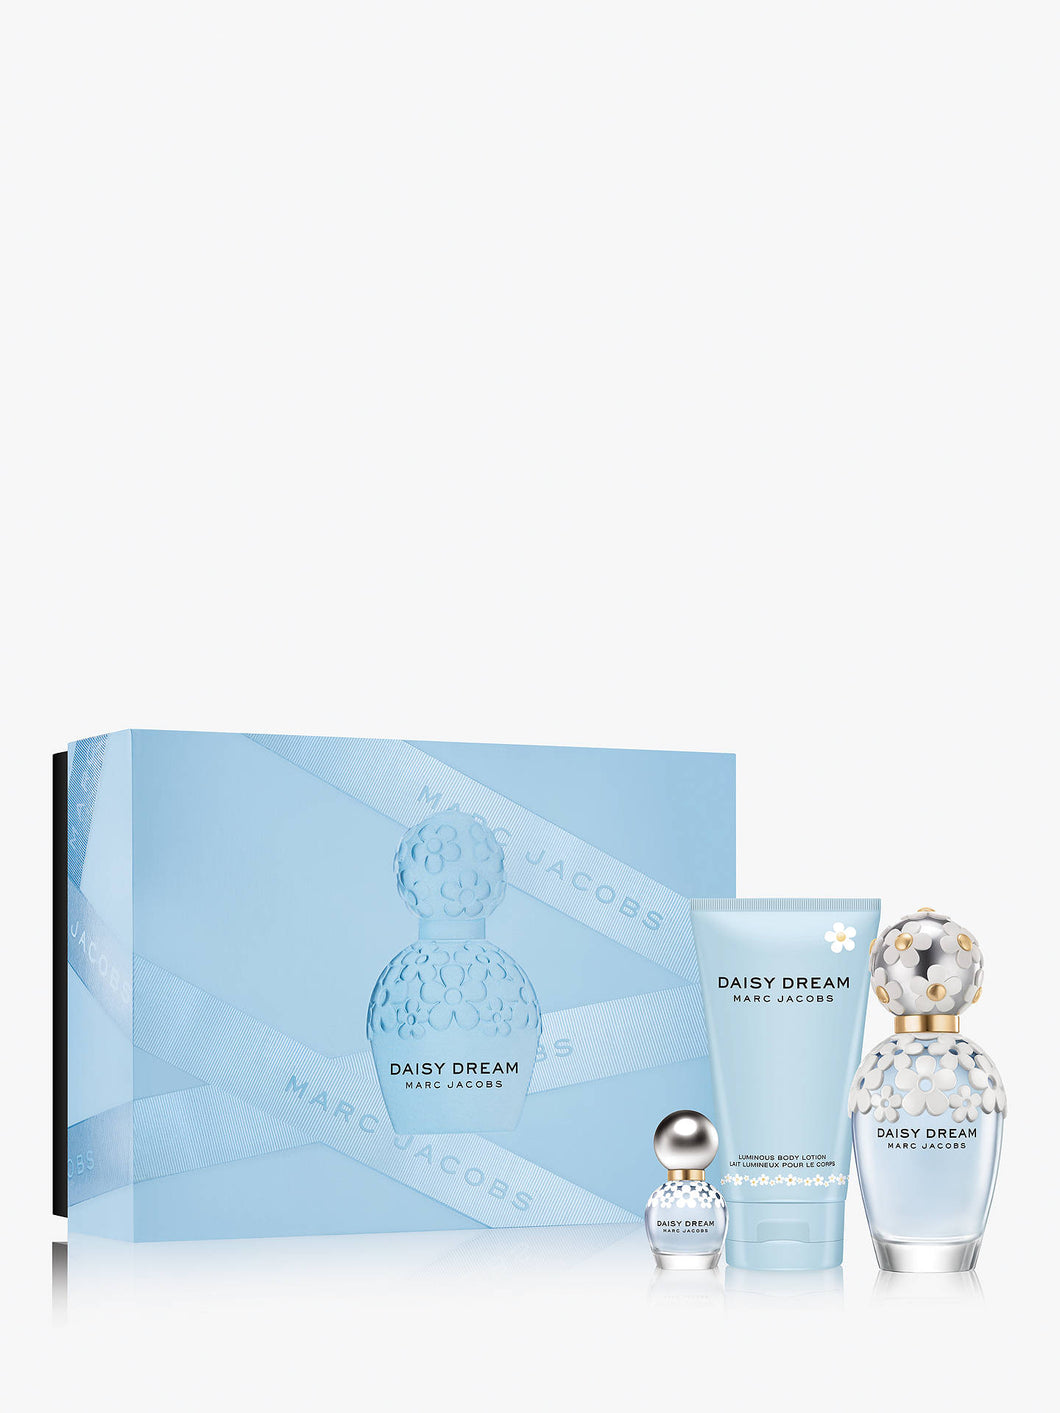 Mark Jacobs Daisy Dream Eau de Toilette Gift Set